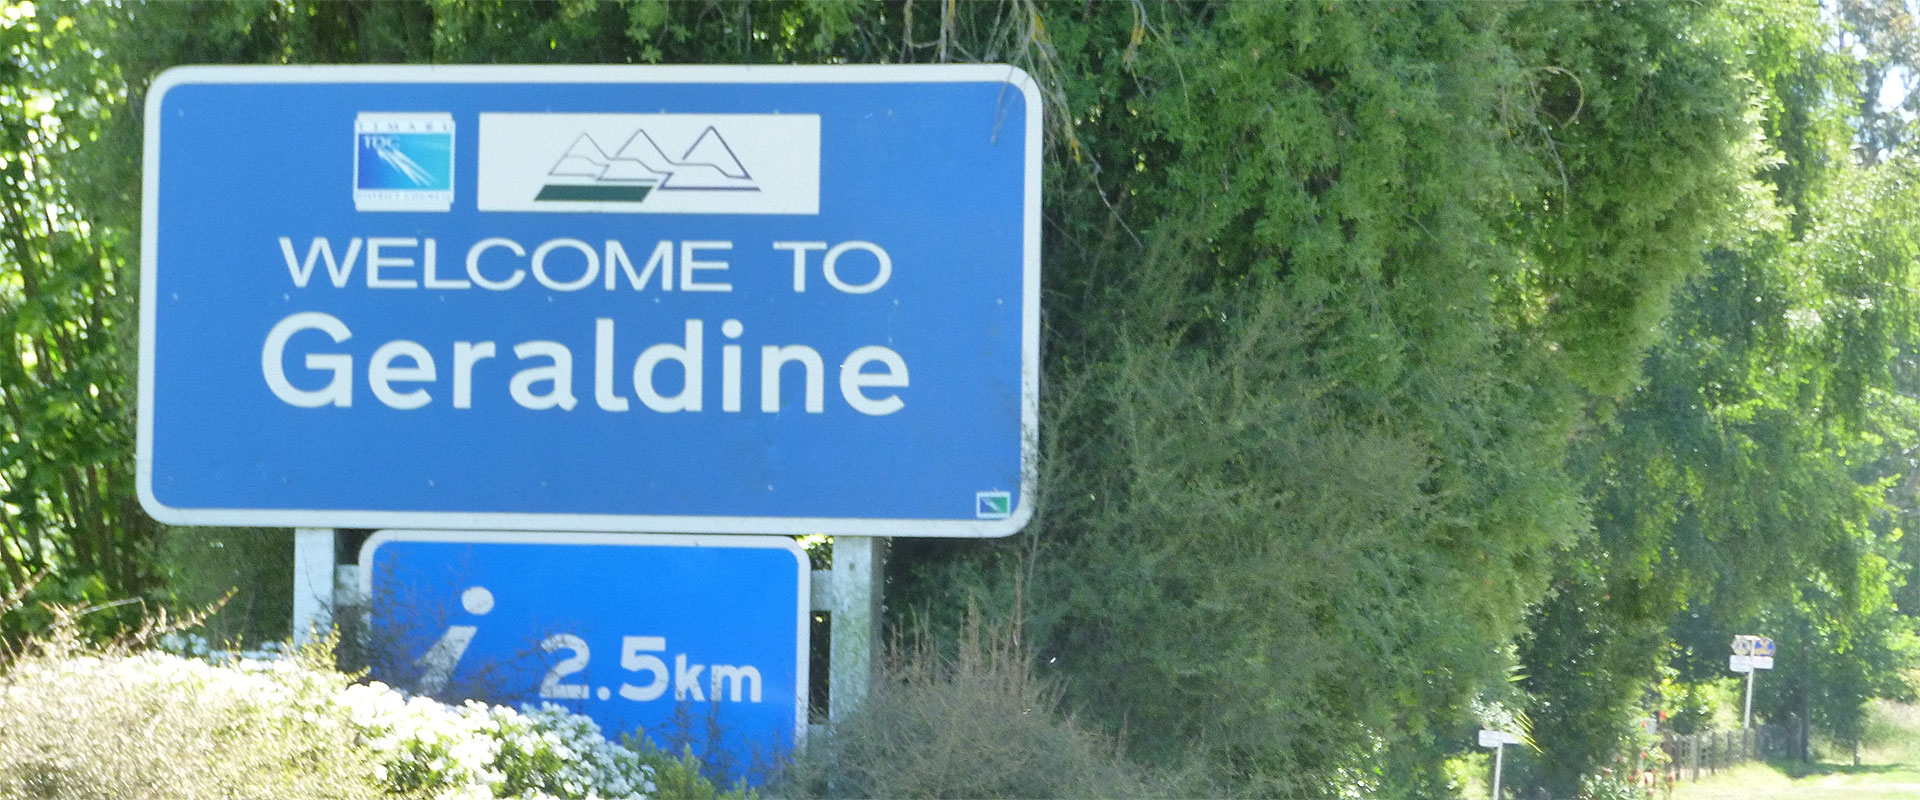 welcome to geraldine